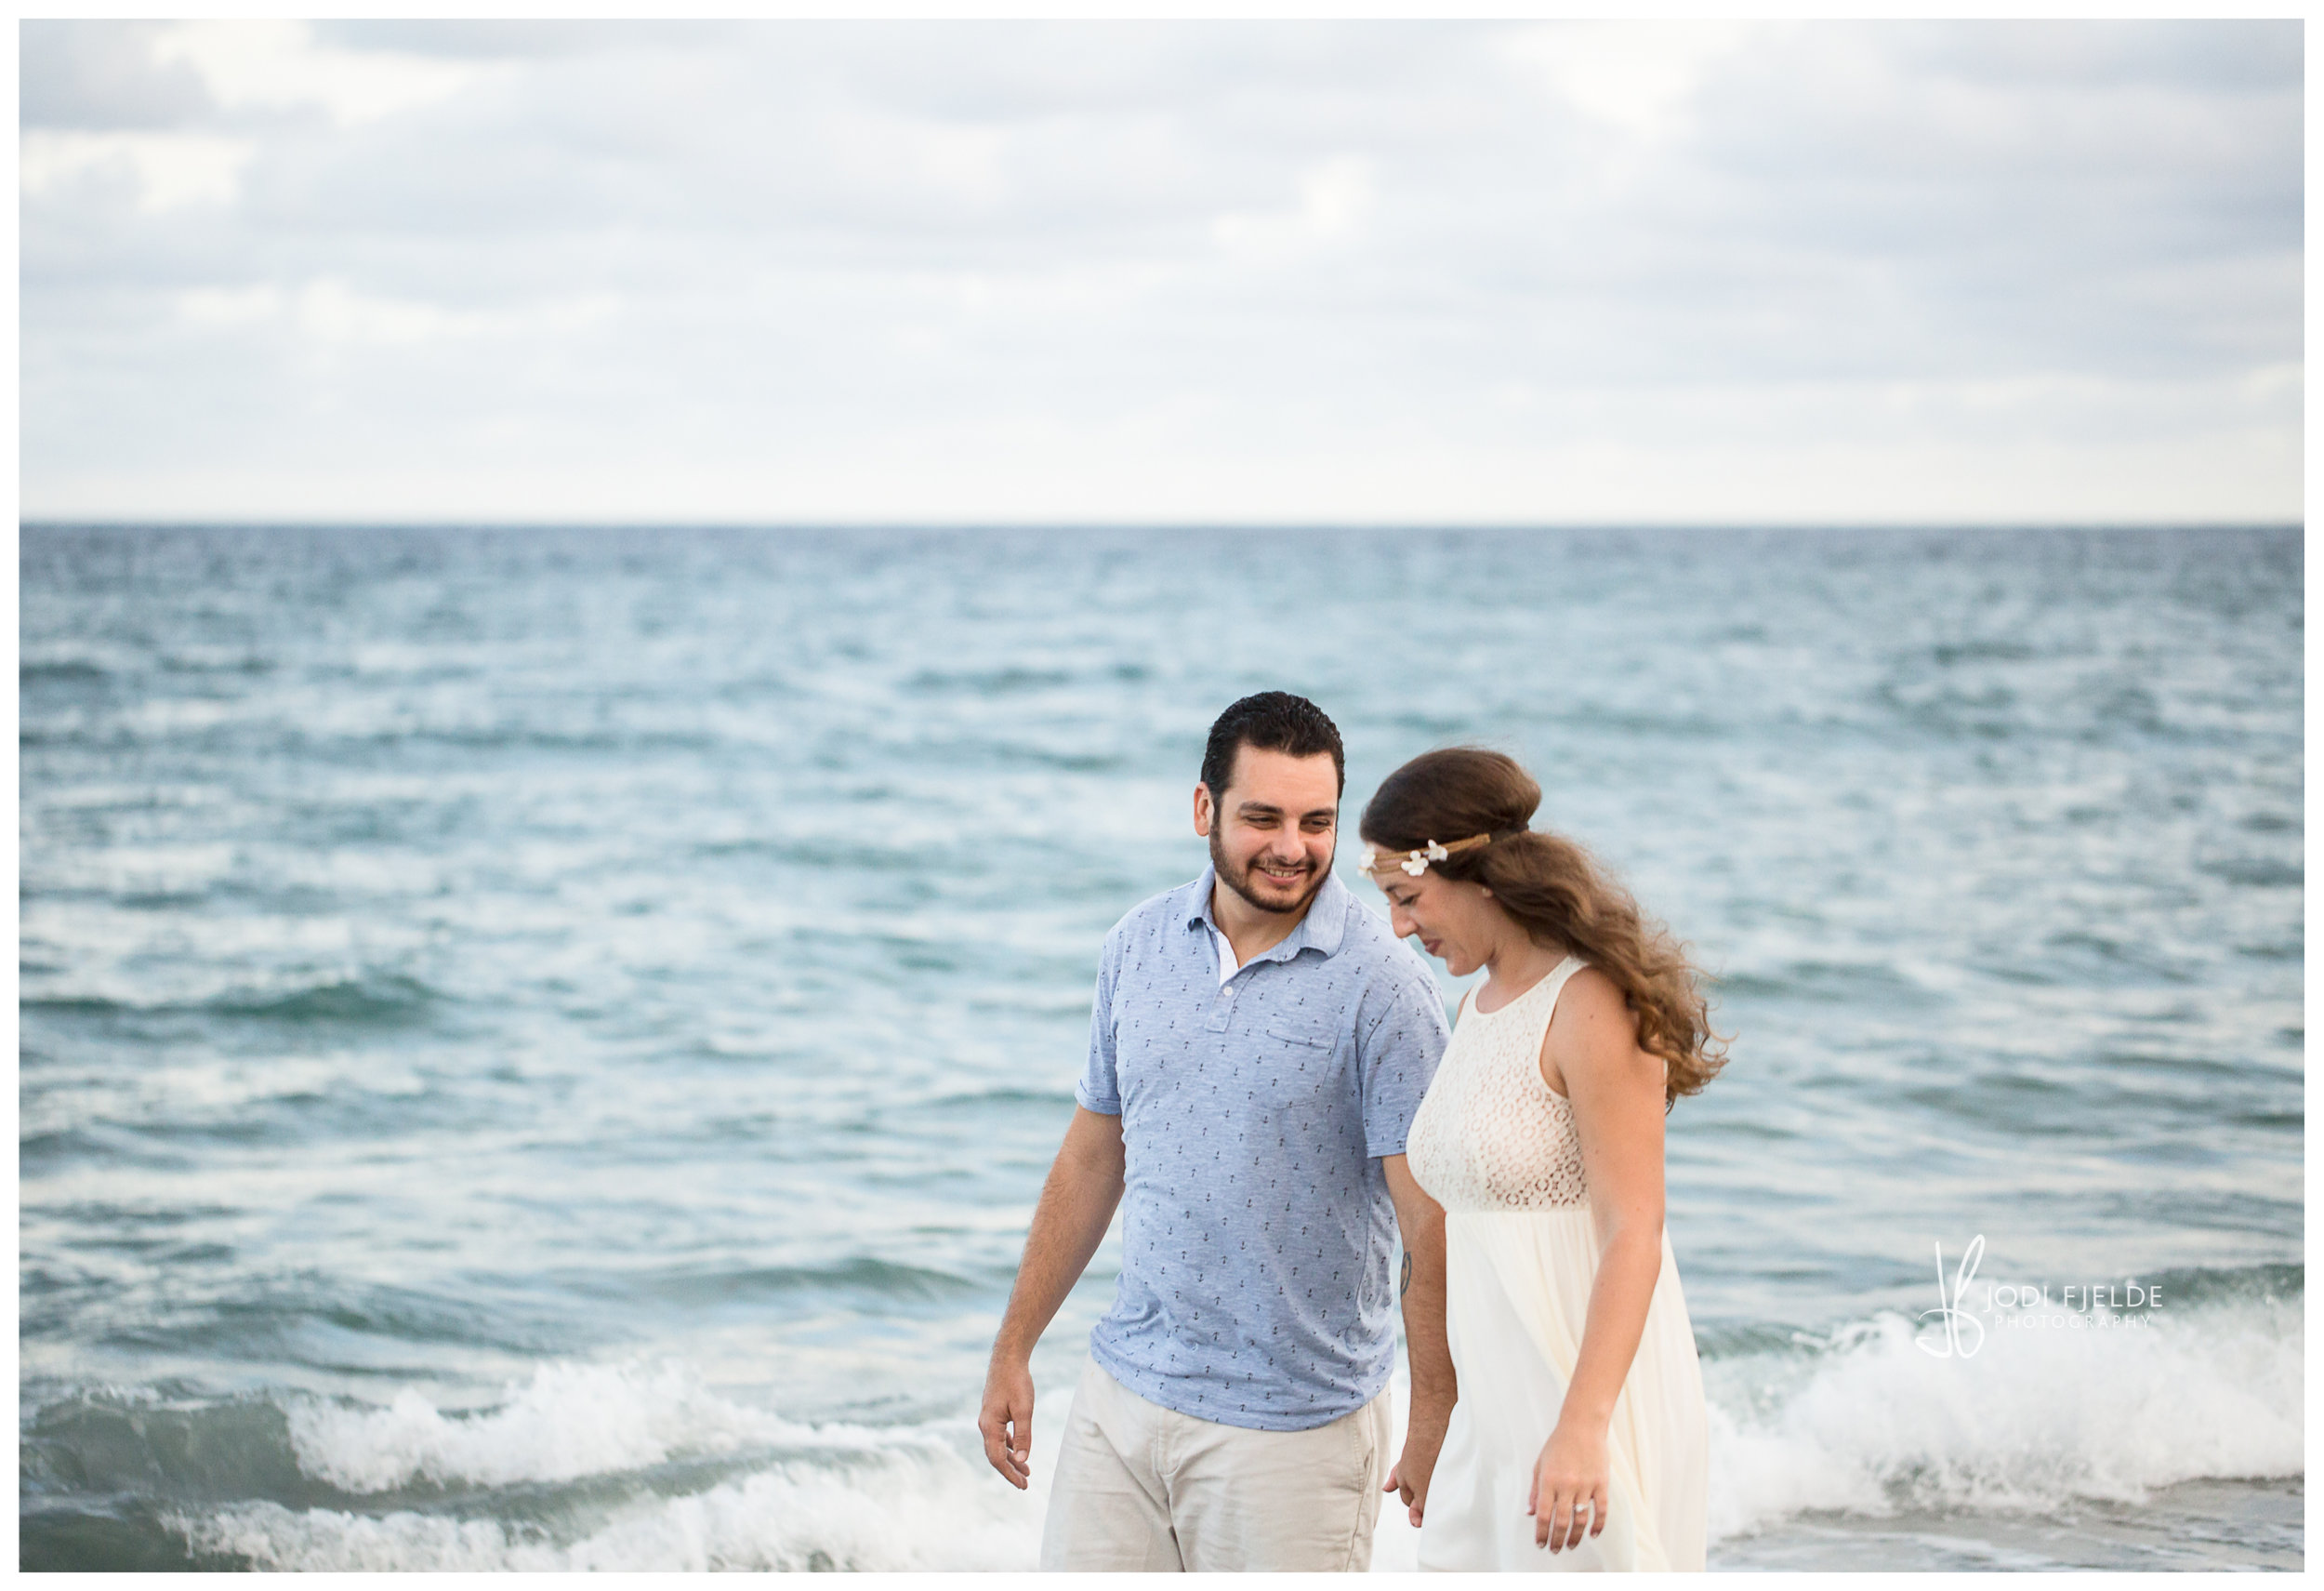 Morikami_Museum_Gardens_Delray_Beach_Engagement_Heather_and Doug_13.jpg